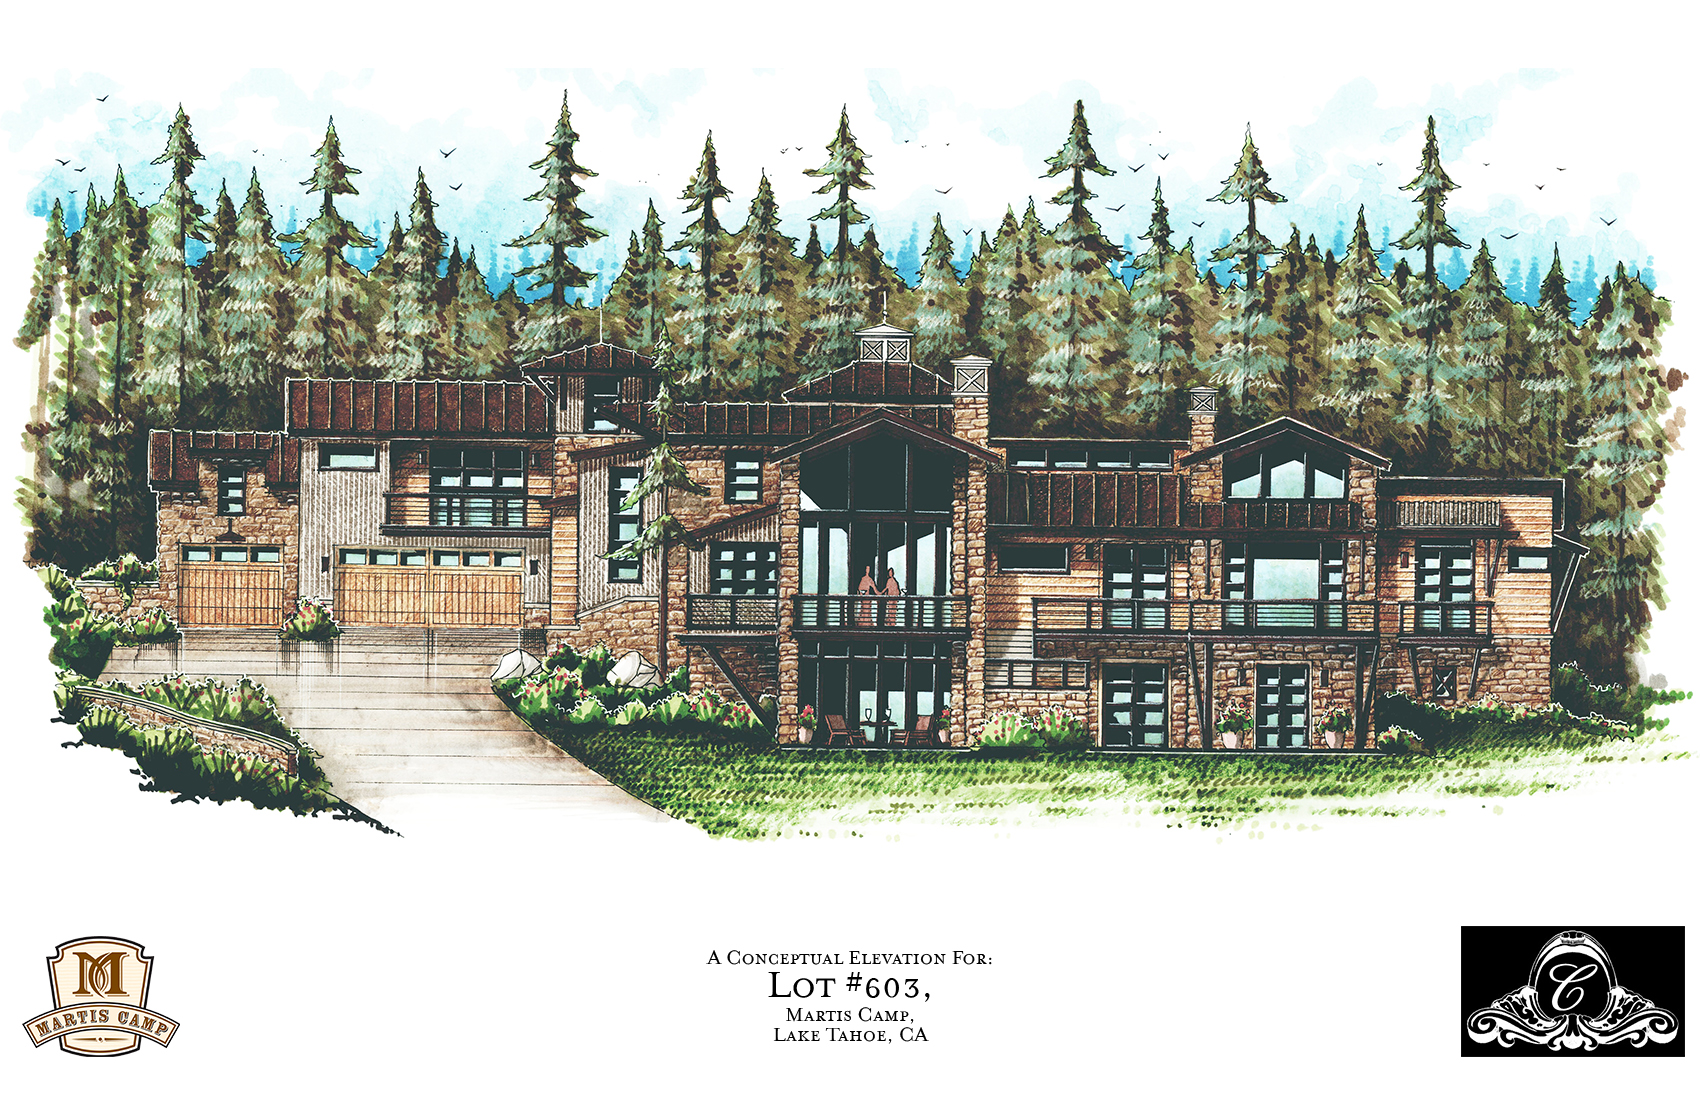 Martis Camp _Conceptual Elevation_03222018.jpg